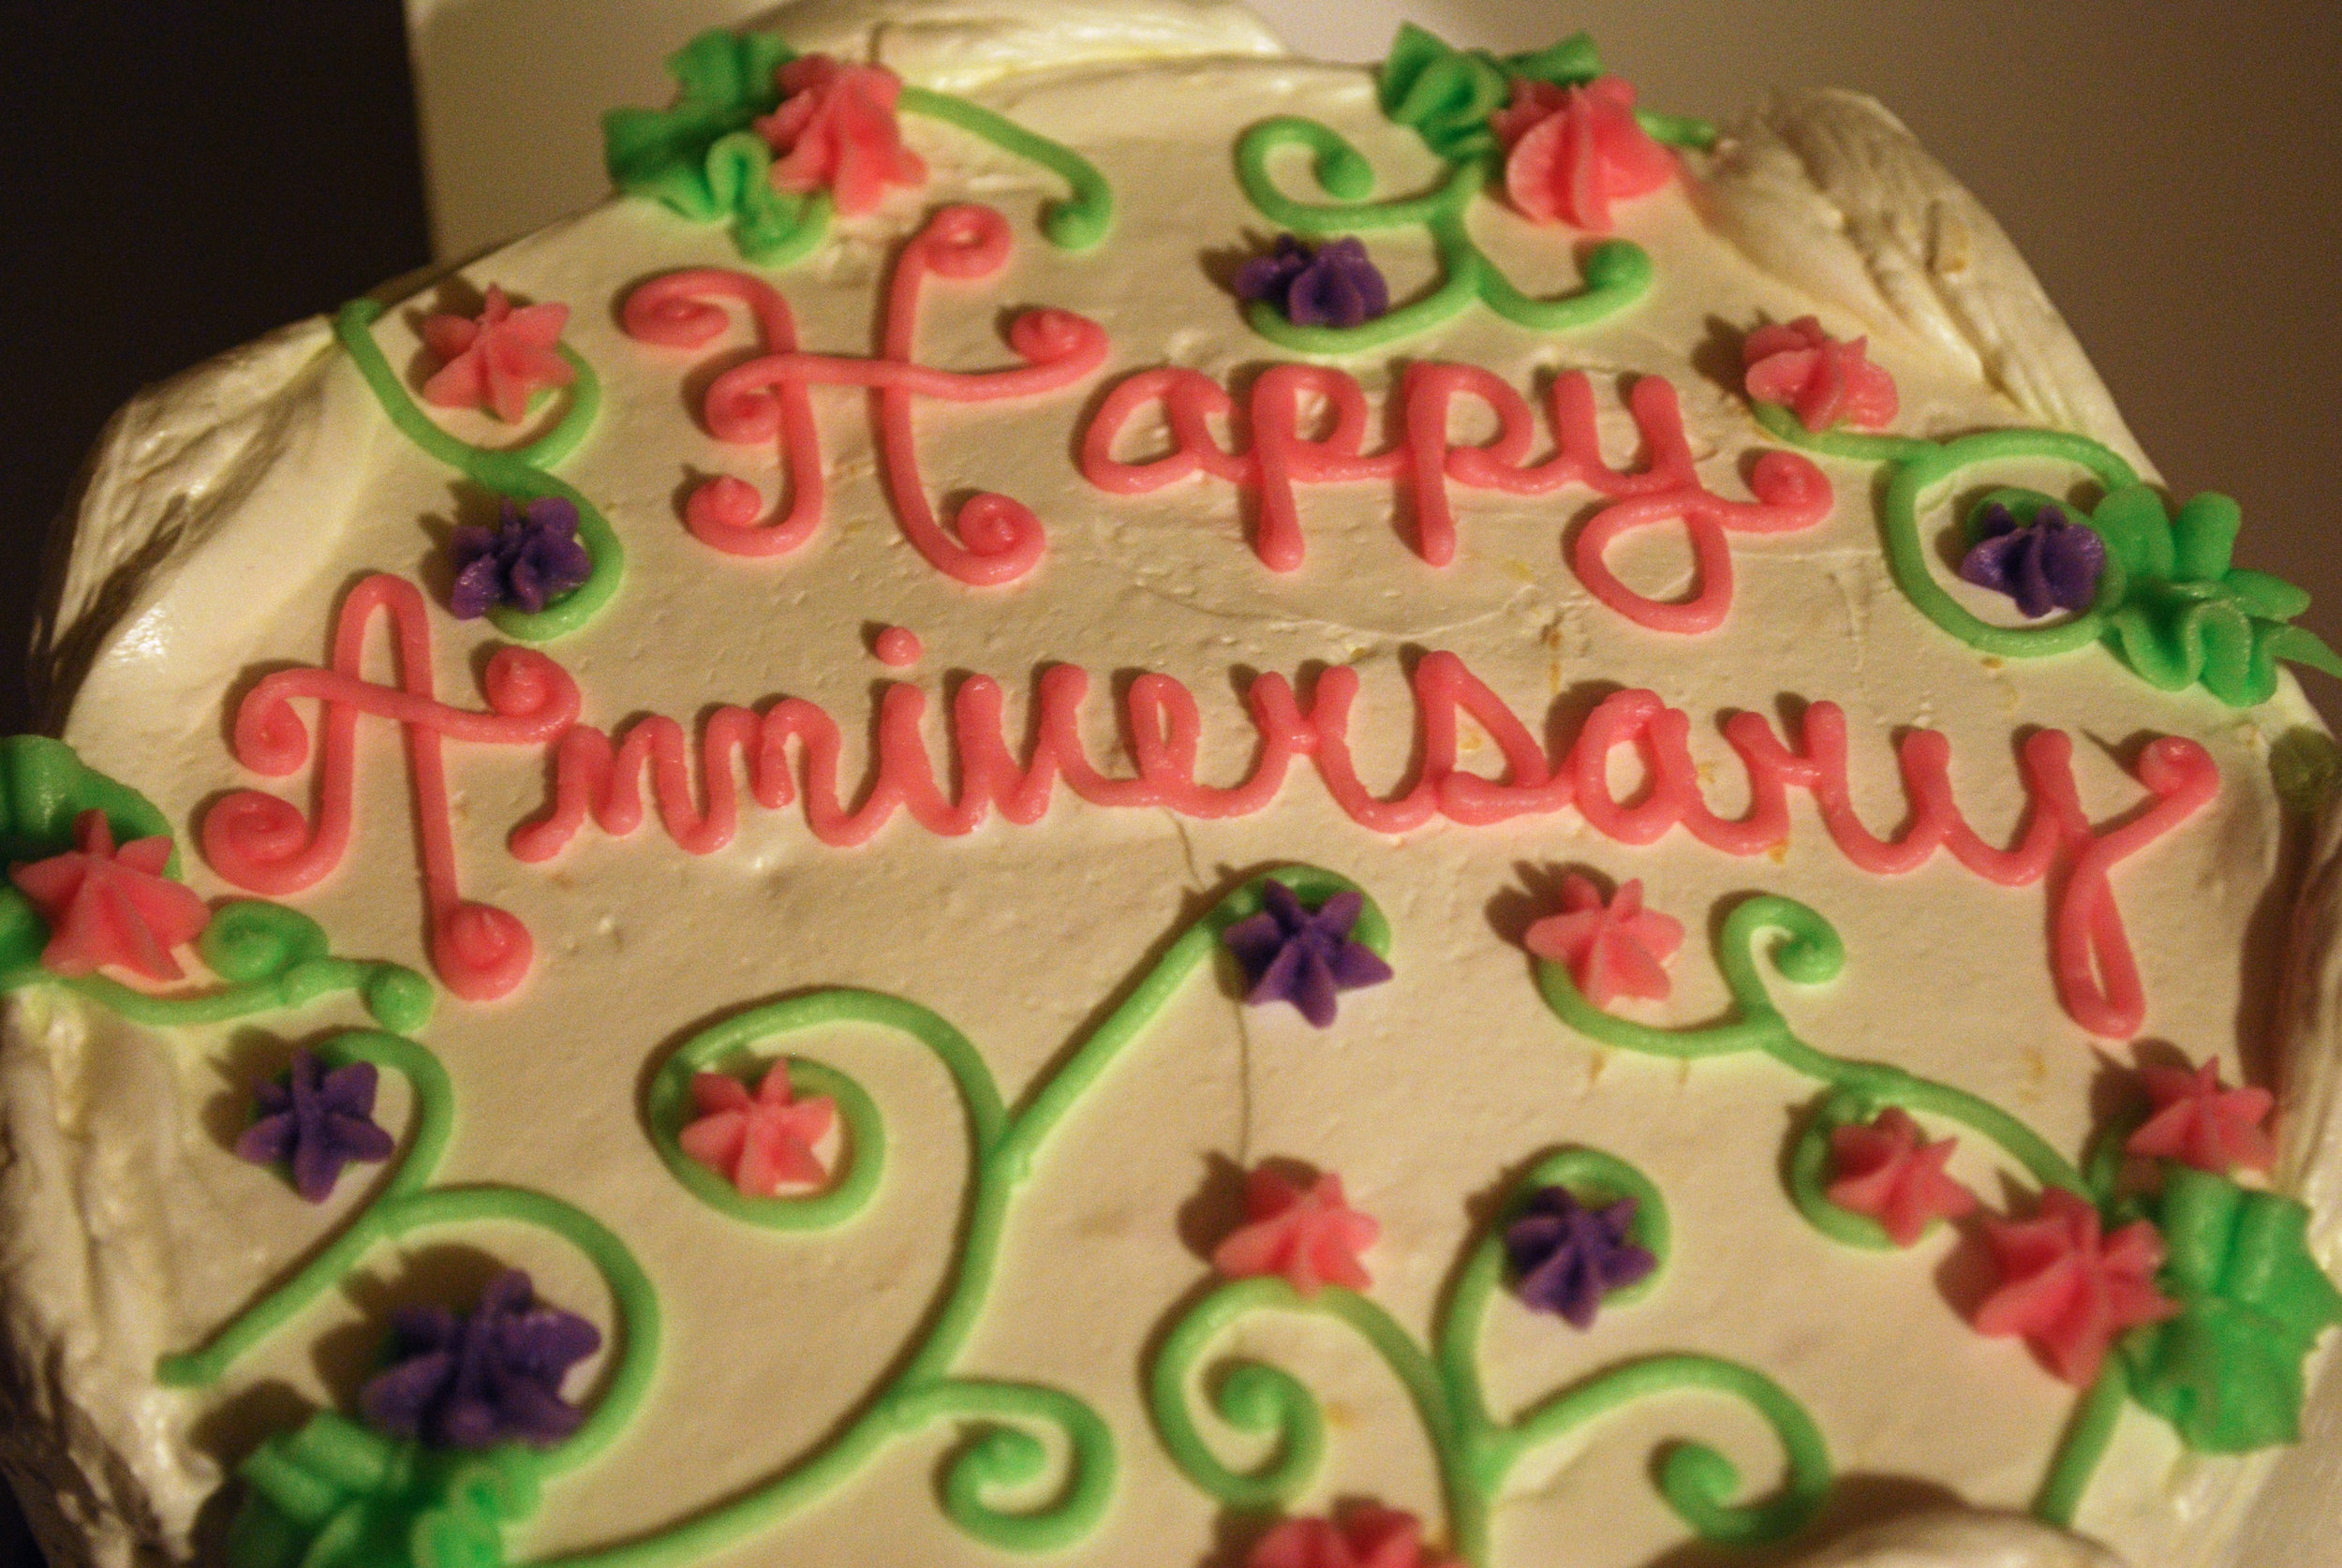 Picture of anniversary cake by Kendiala from flickr.com.